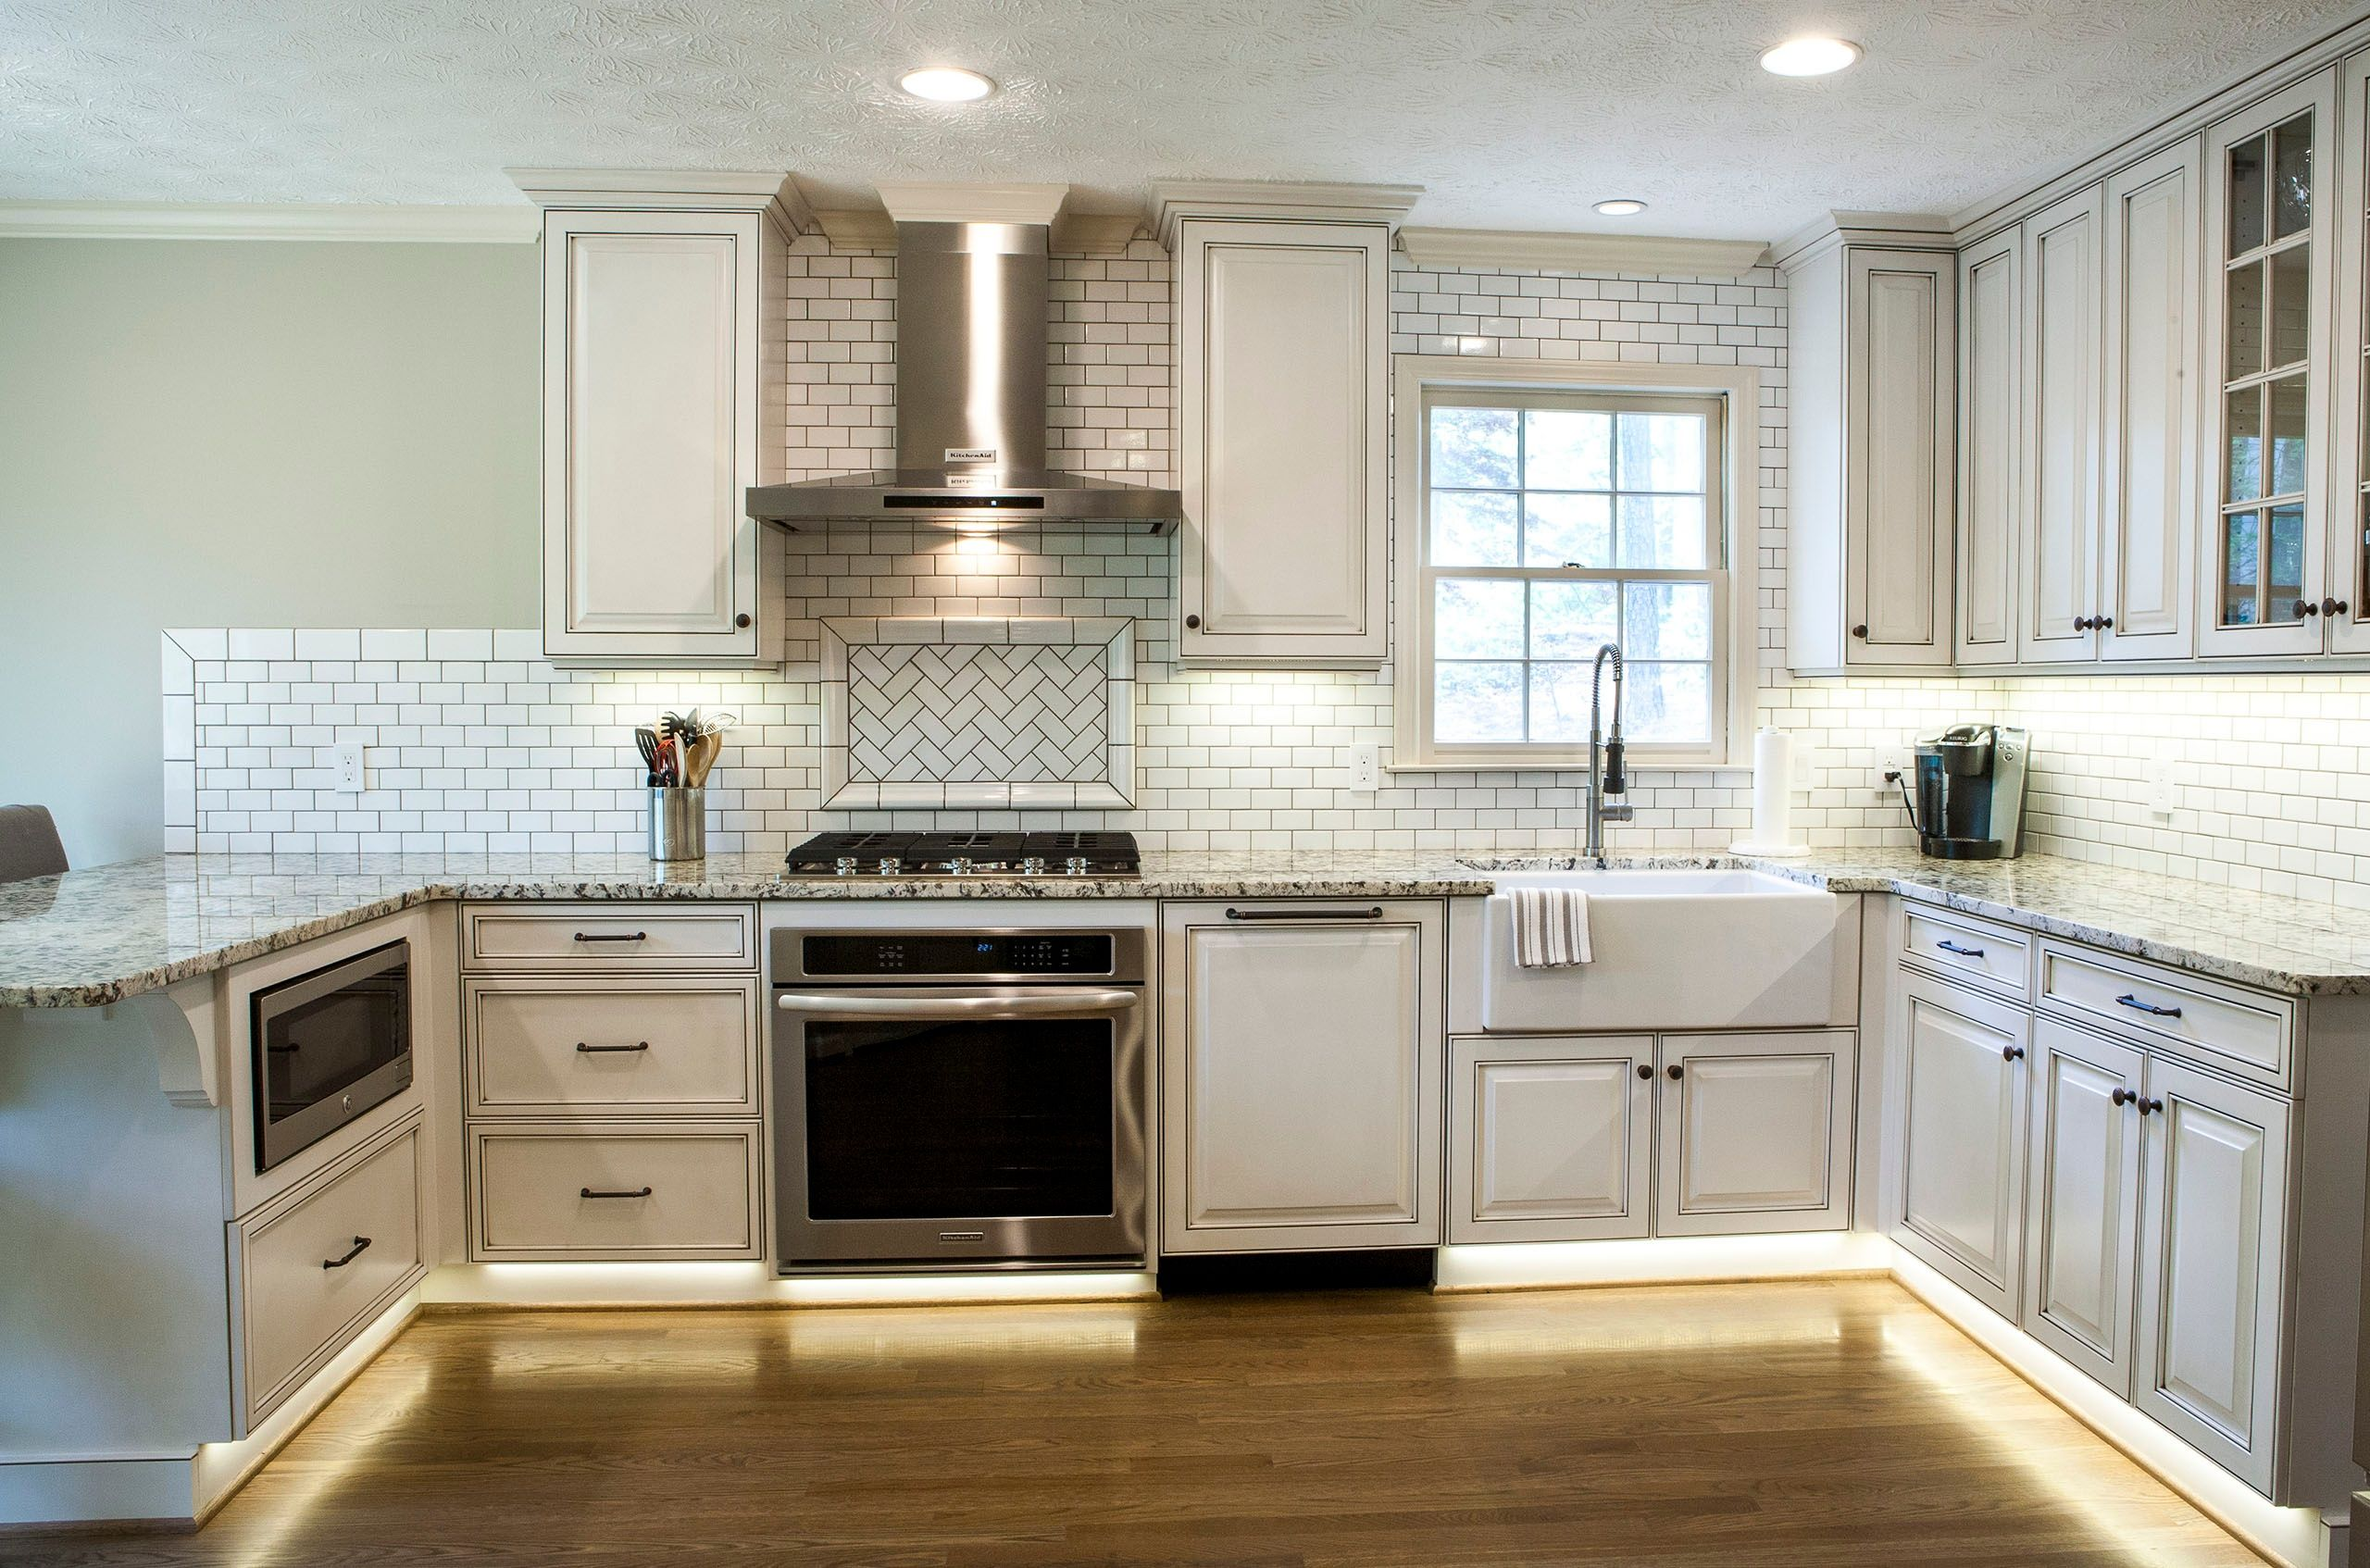 Under-cabinet lighting can really accentuate a backsplash ...